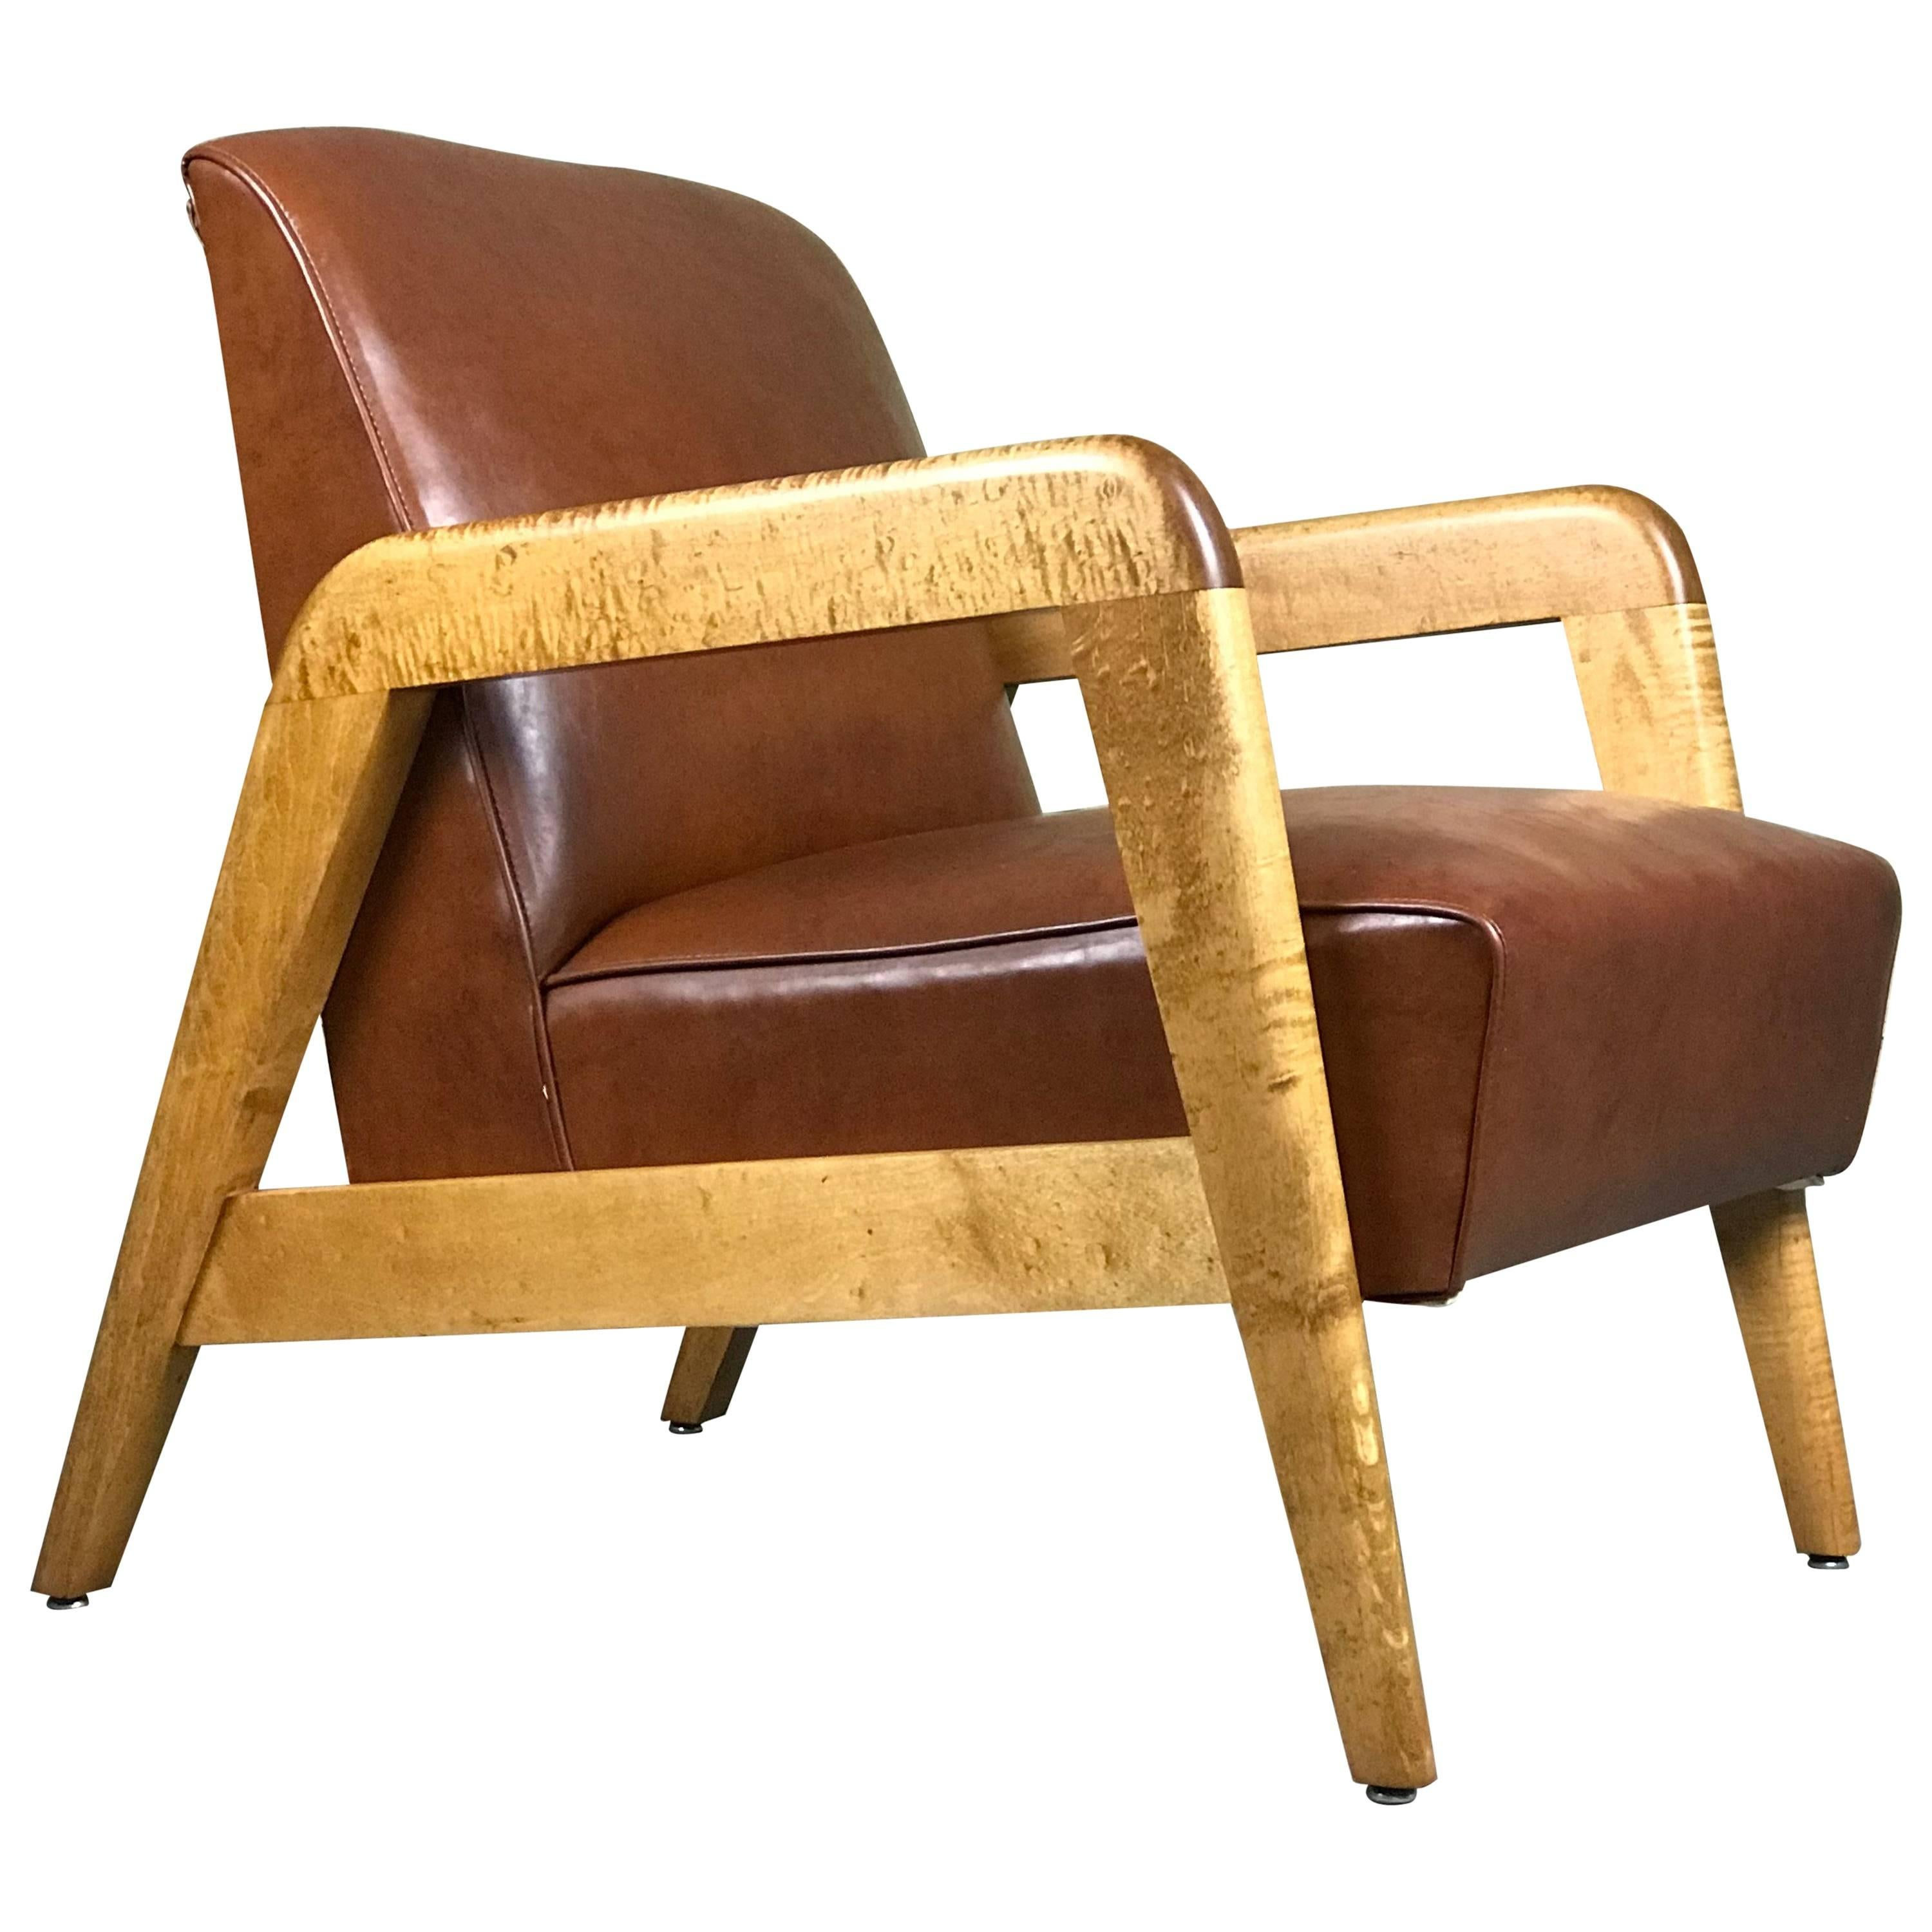 Early Mid Century Modern Lounge Chair By Russel Wright For Thonet